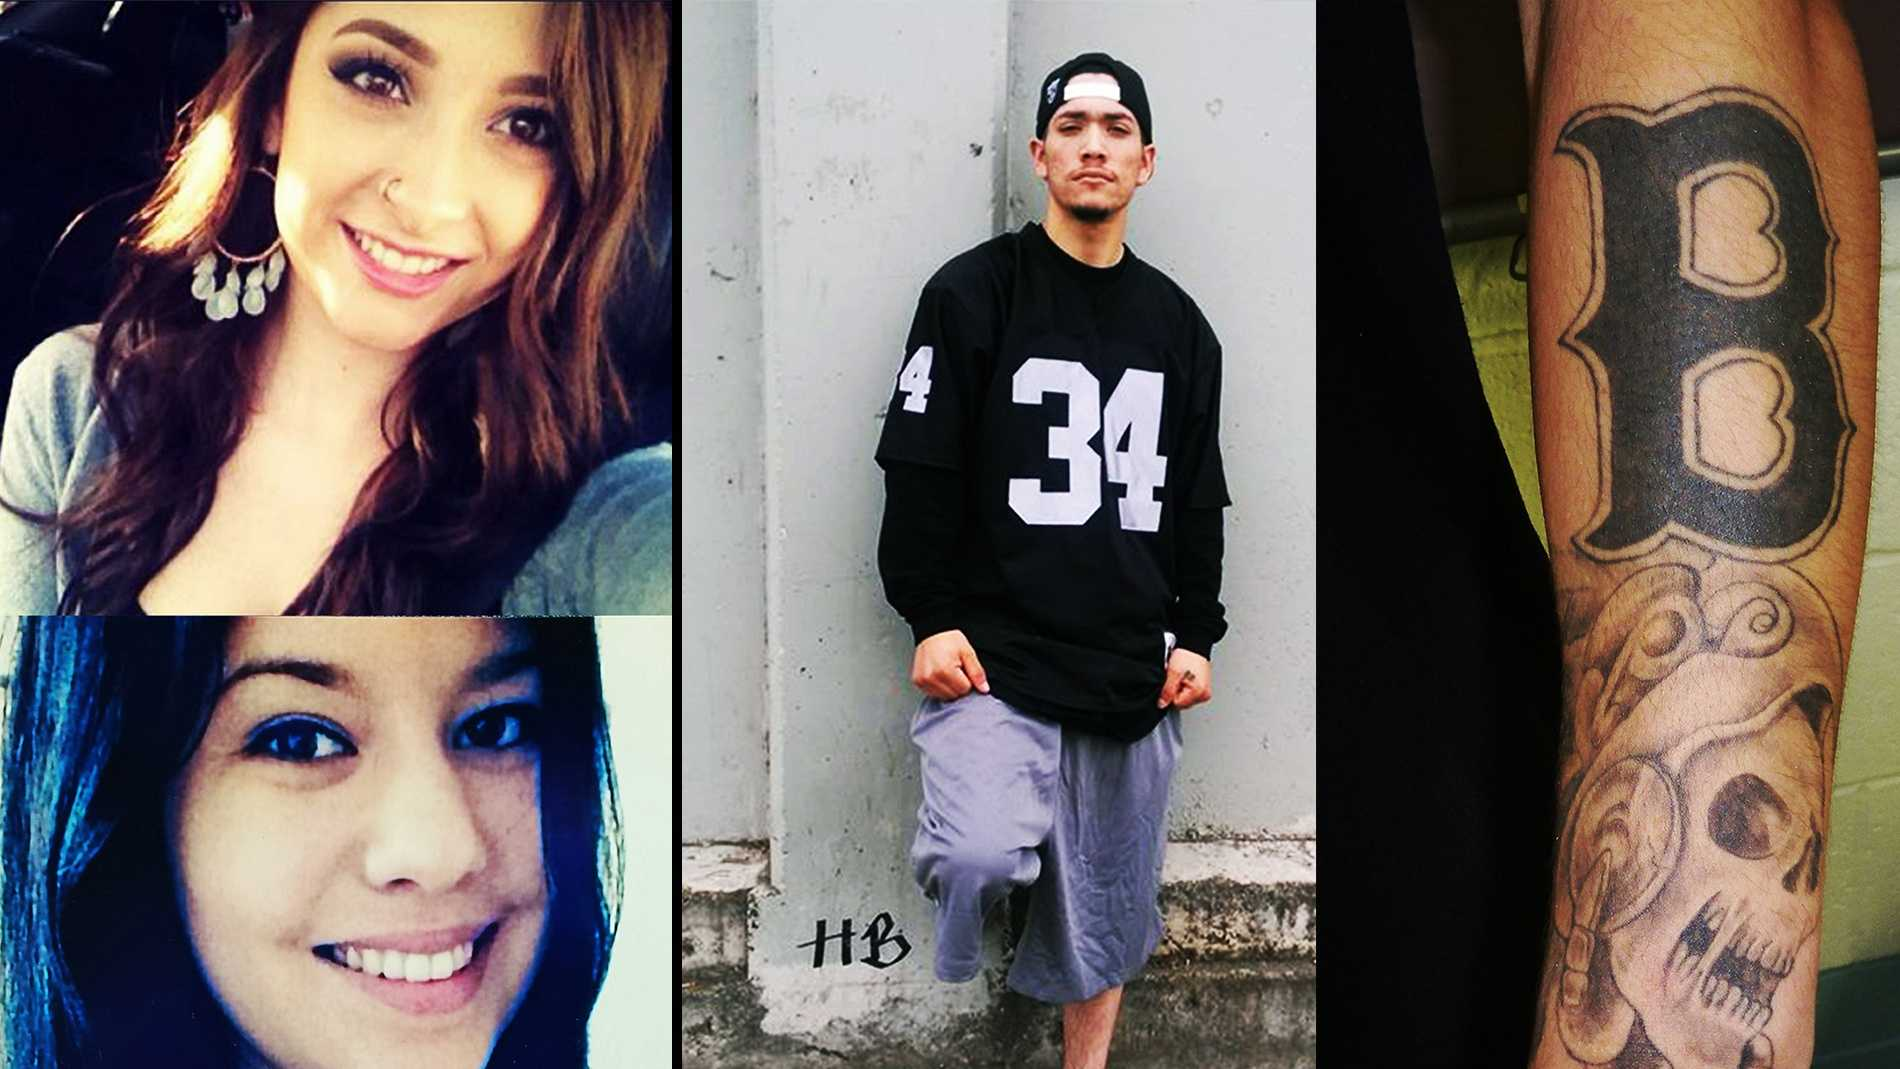 Ariana Zendejas, top left, Vanessa Flores, bottom left, and Jose Barajas, right.